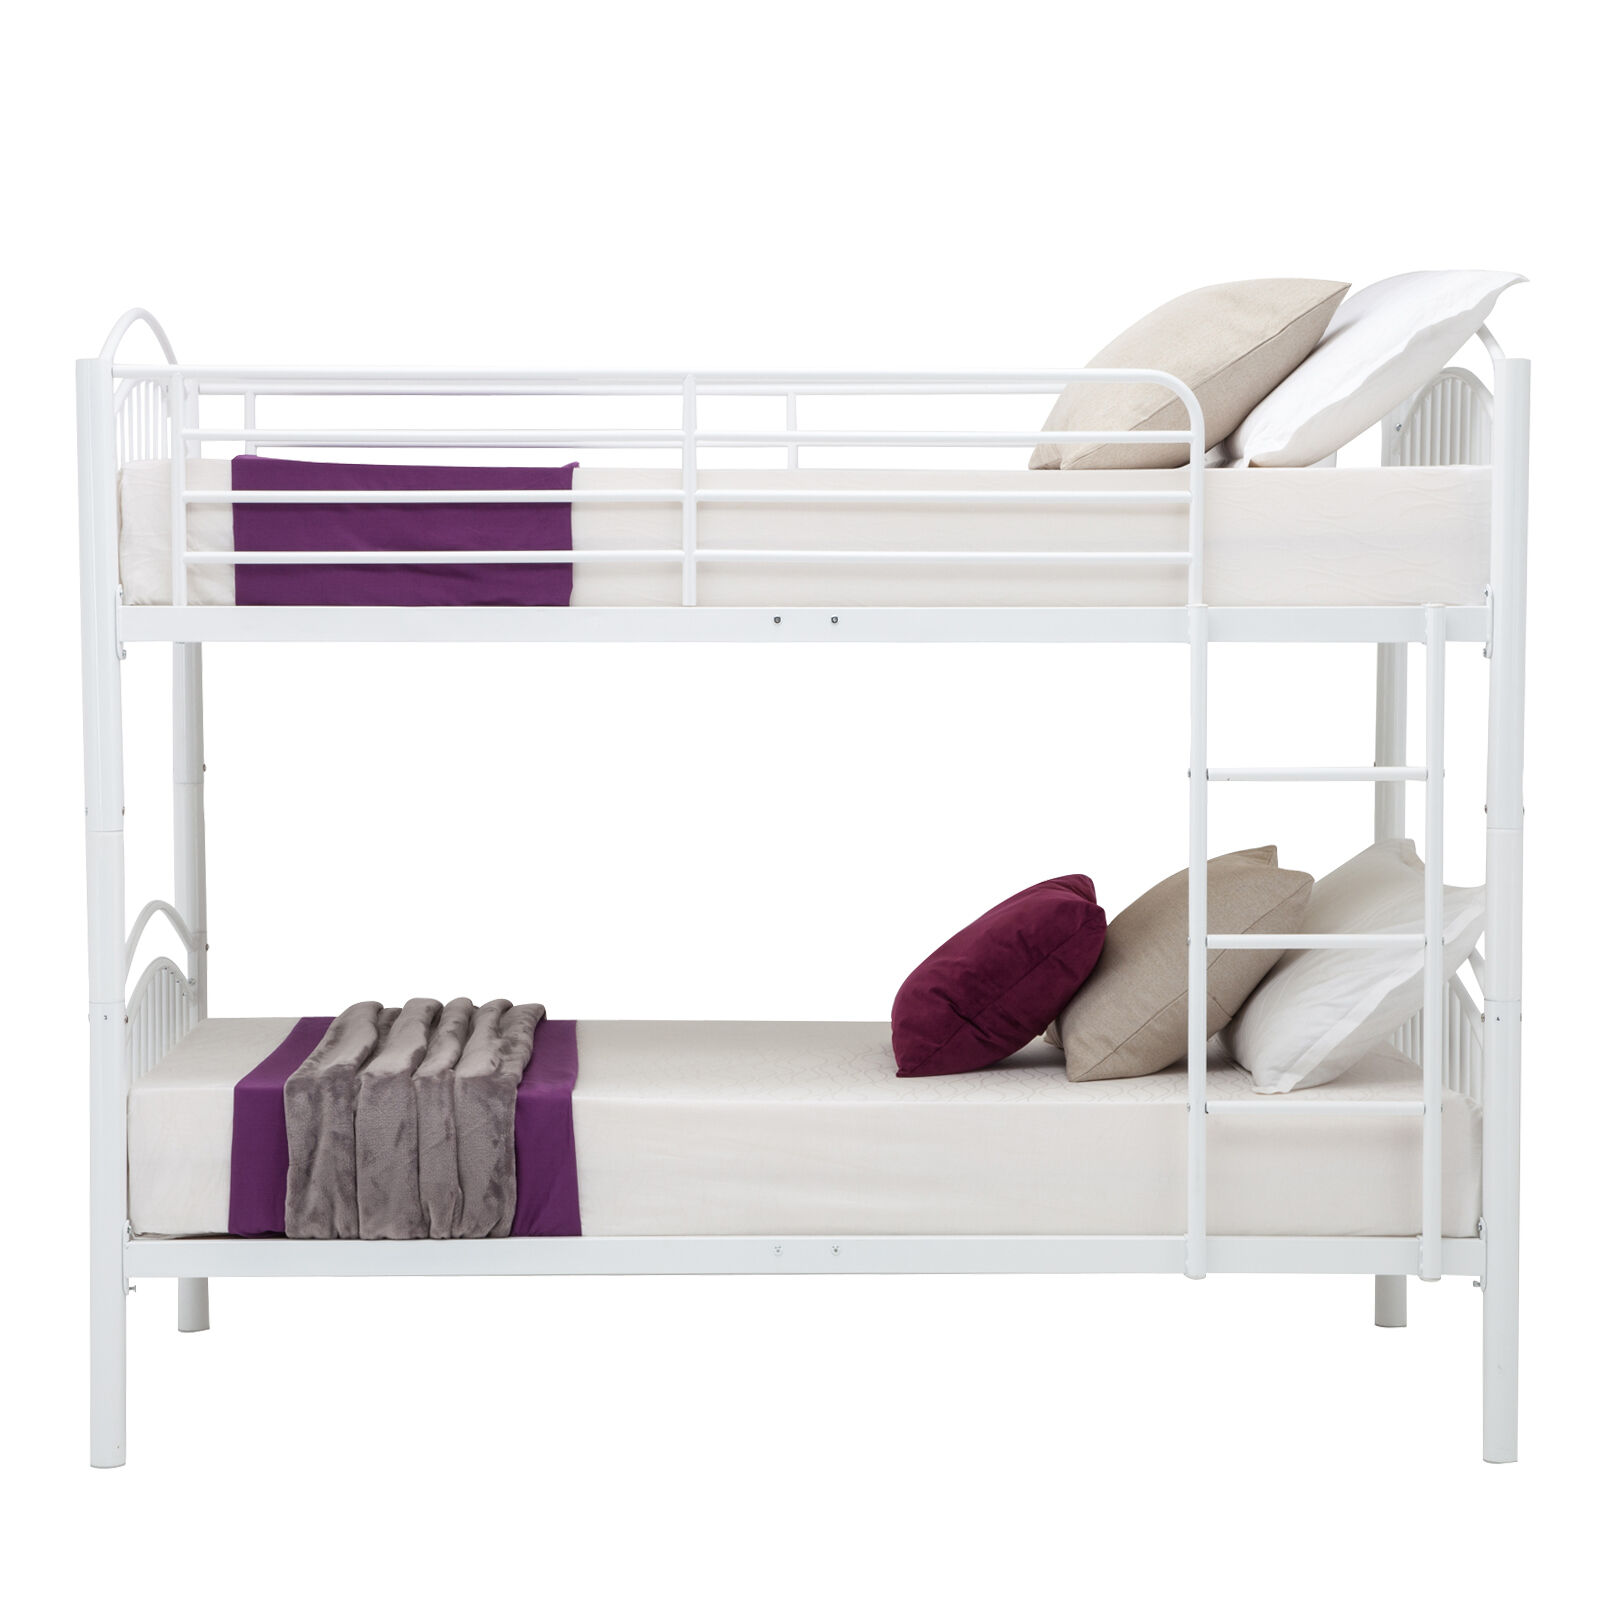 Modern 3ft single white metal bunk bed frame 2 person for for Modern bunk beds for kids